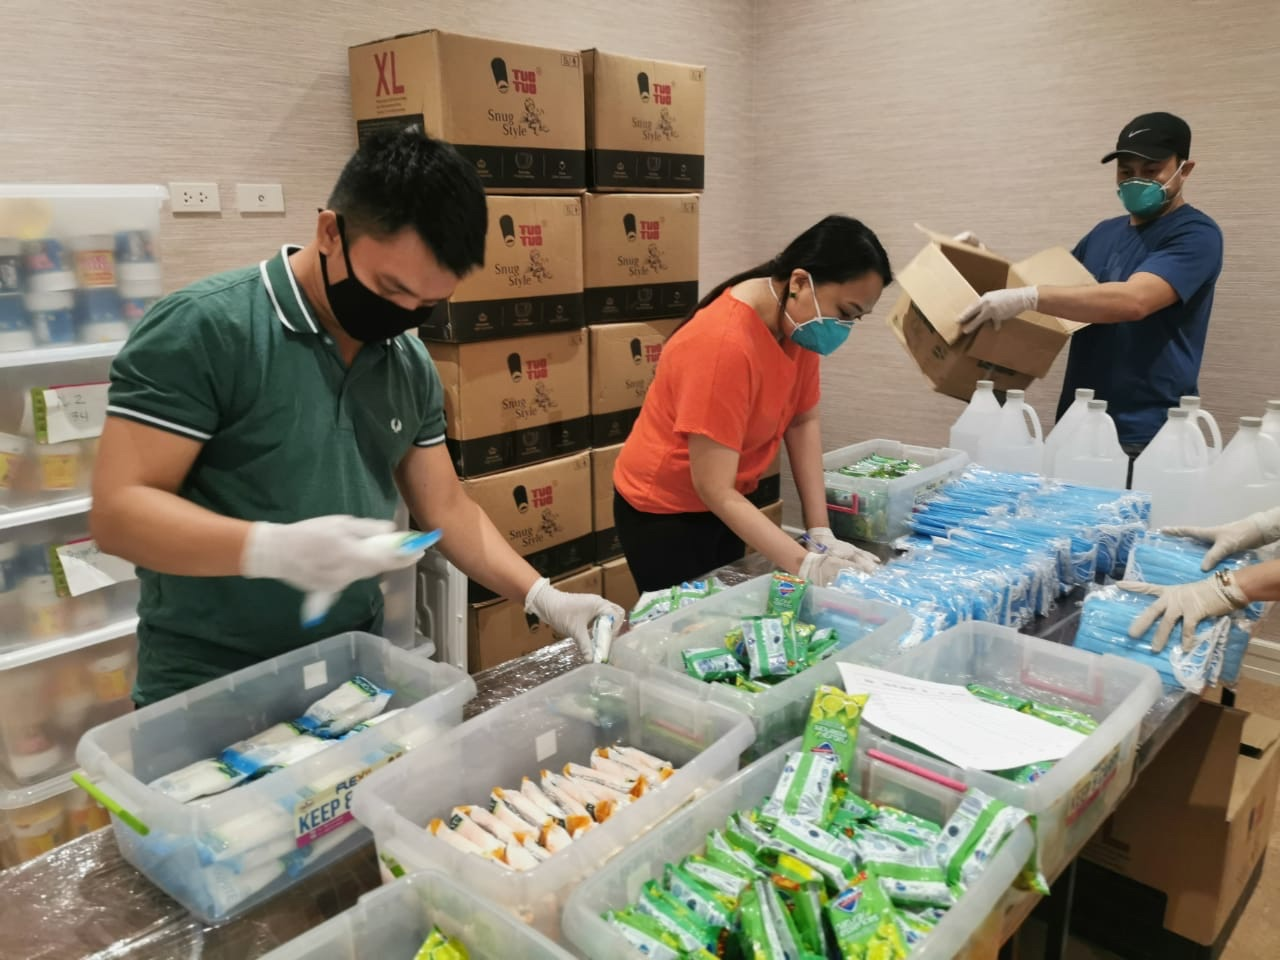 IMG 23652d39710d4d19cf86d150bca91060 V - Las Piñas Rep. Camille Villar readies essential supplies for barangay health workers, military personnel fighting against spread of COVID-19